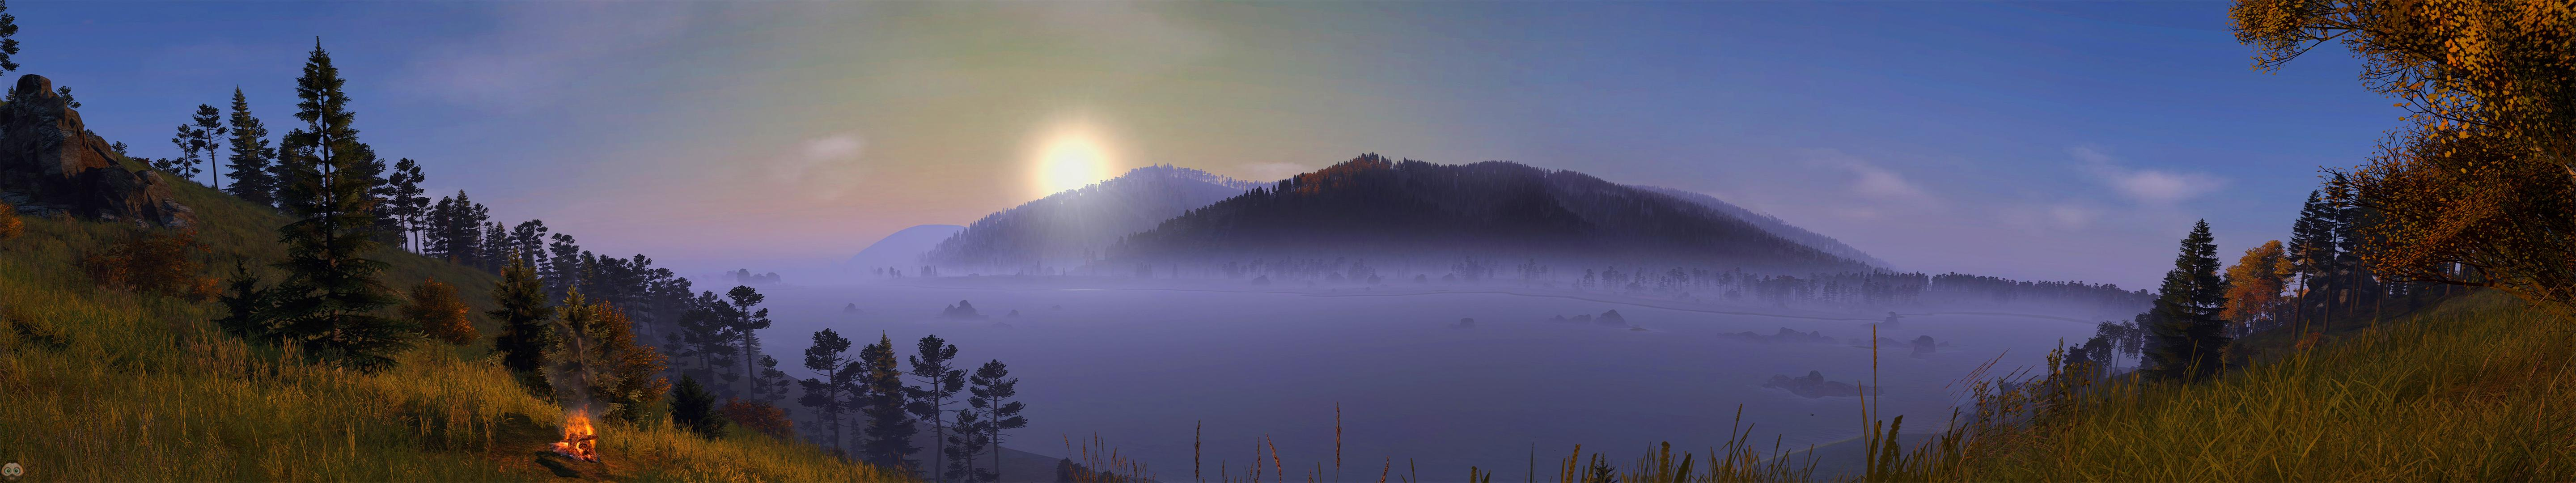 5760x1080 Skalisty Panorama (3 monitor wallpaper 5760 x 1080) : dayz